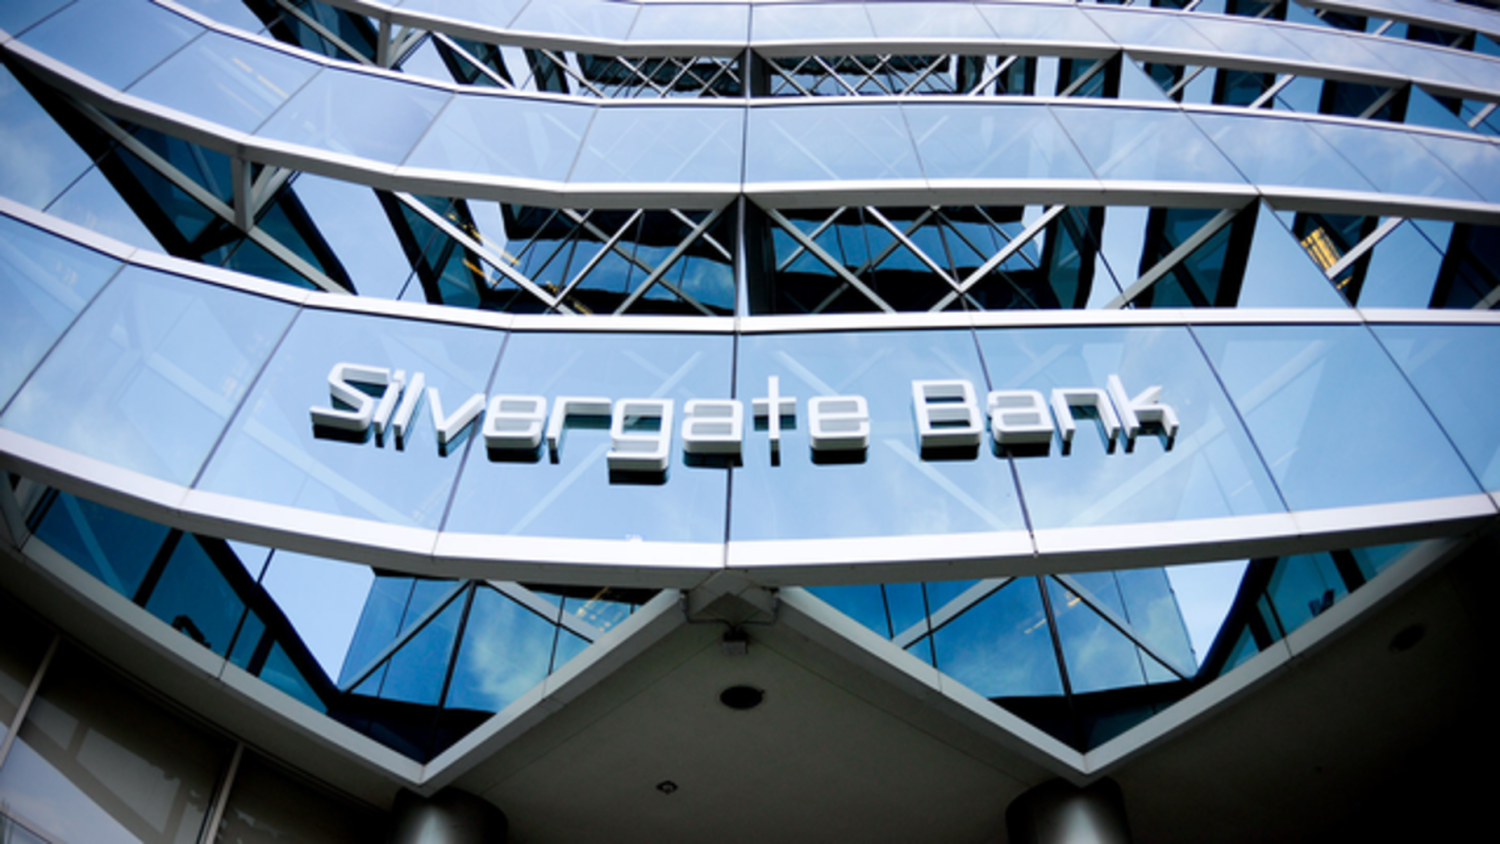 Silvergate Bank Adds 59 Crypto Clients, But Deposits Down $123 Million